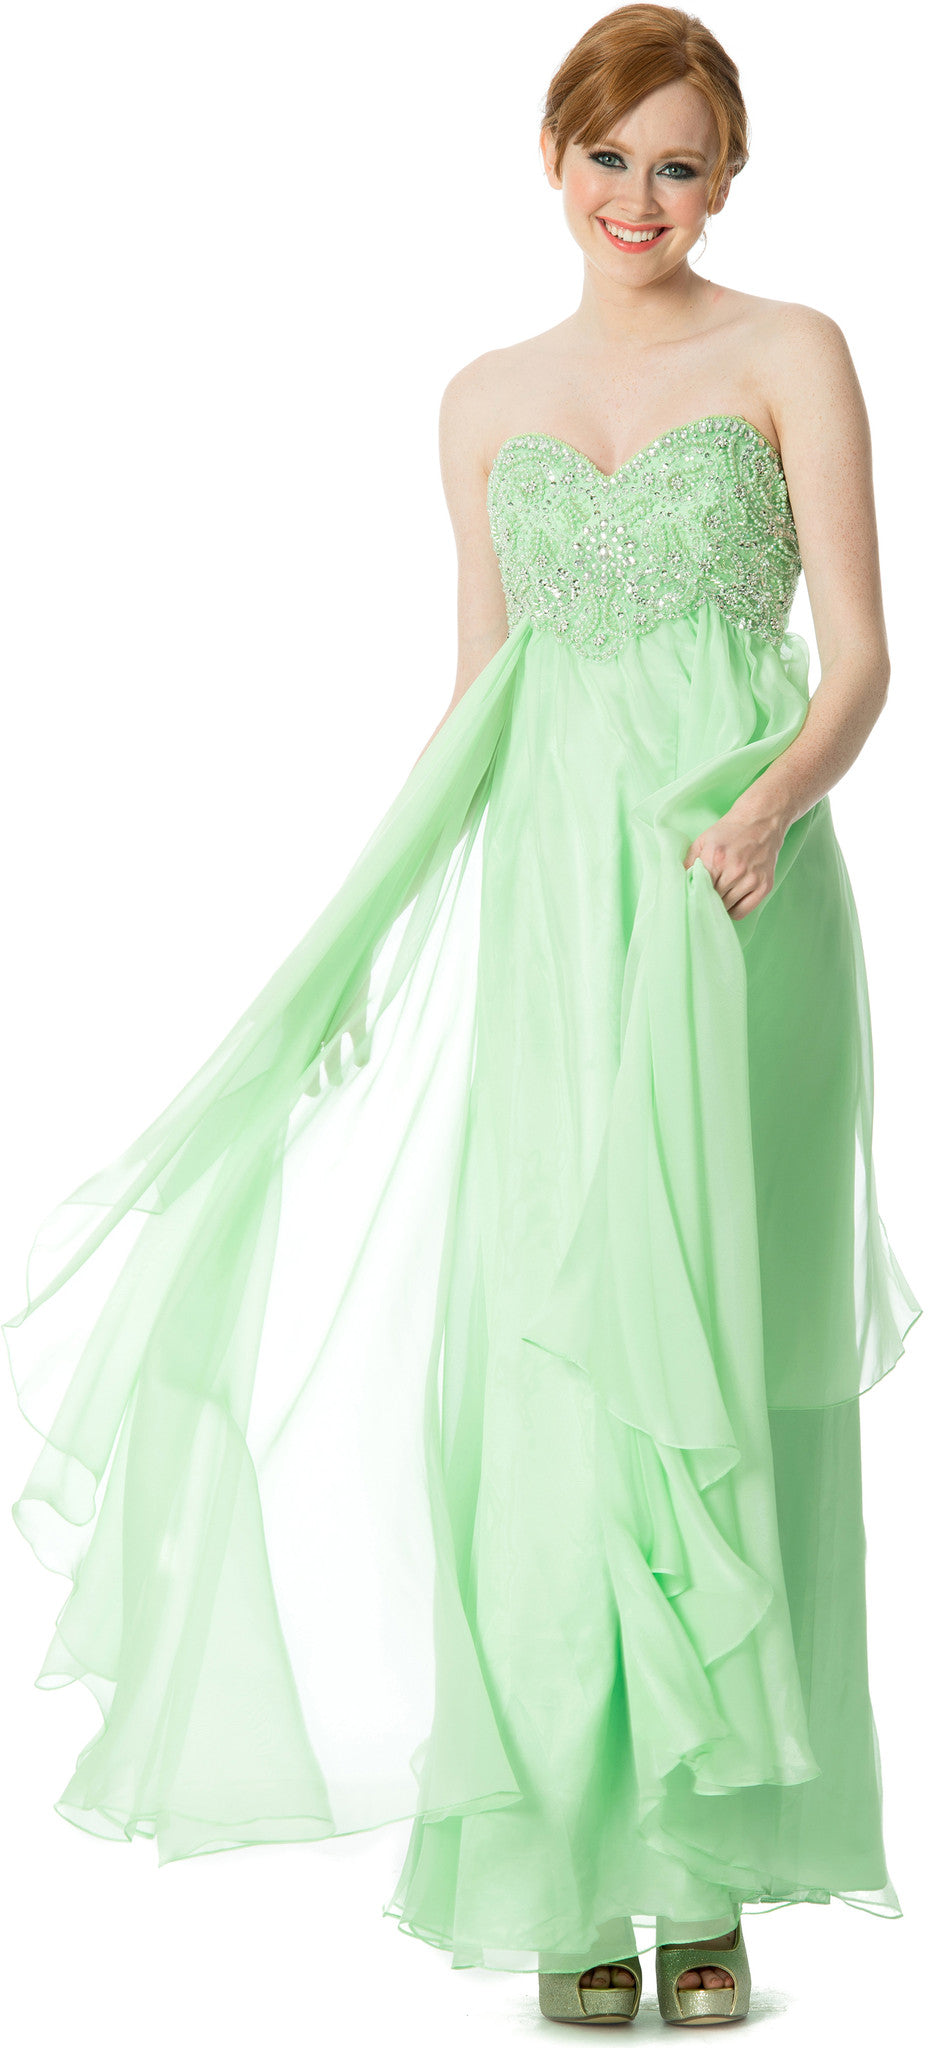 Evening Gown to Prom